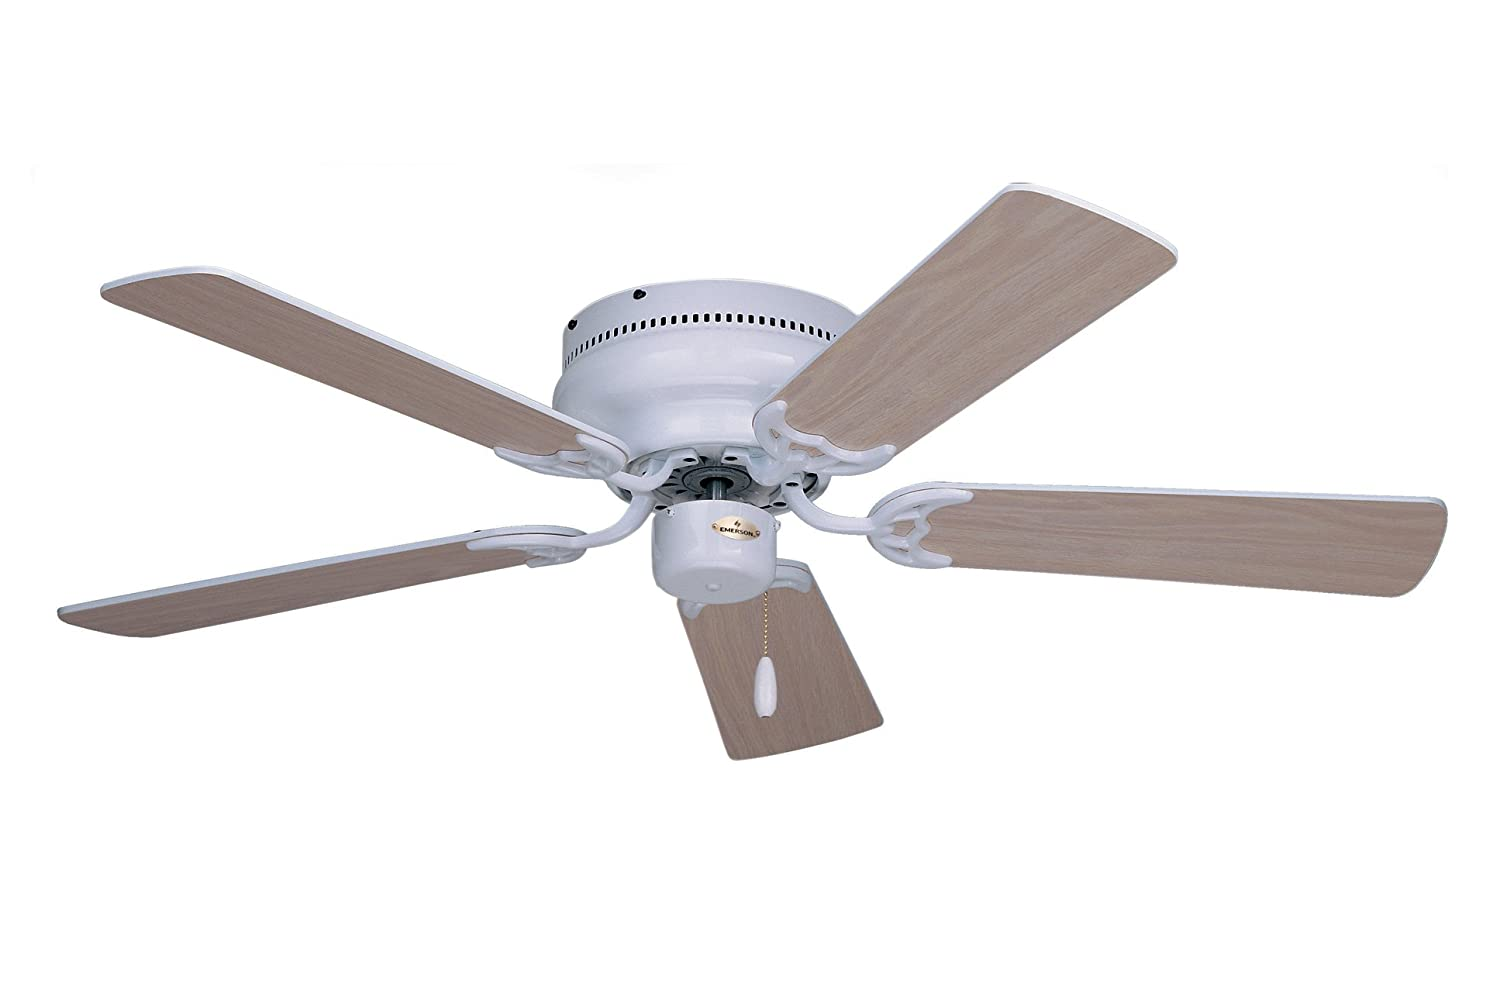 elite plus light viper control fantasia steel remote asp stainless fan p ceilings ceiling